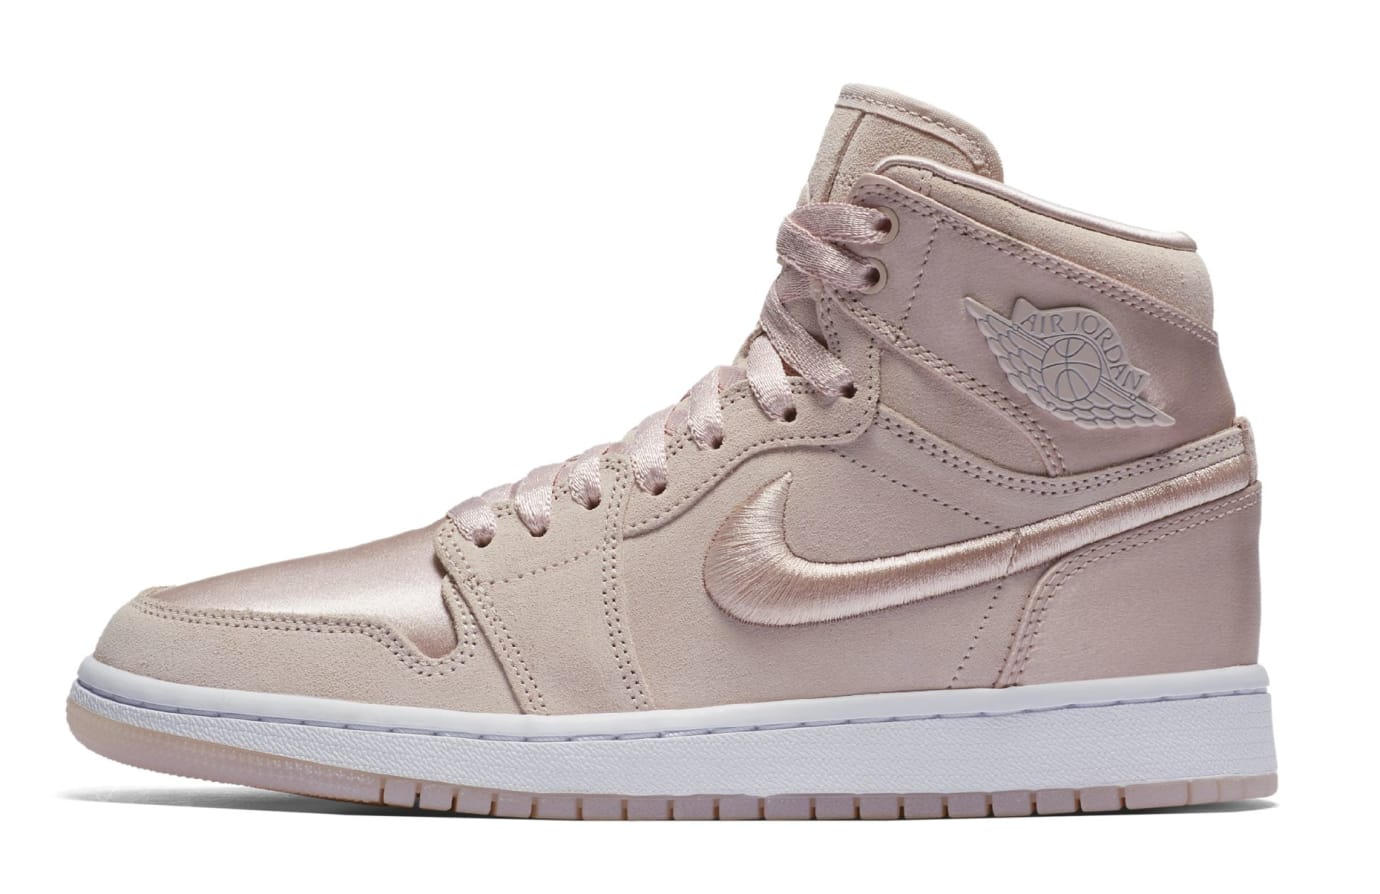 Air Jordan 1 Summer of High 'Silt Red' Silt Red/White-Metallic Gold (Lateral)